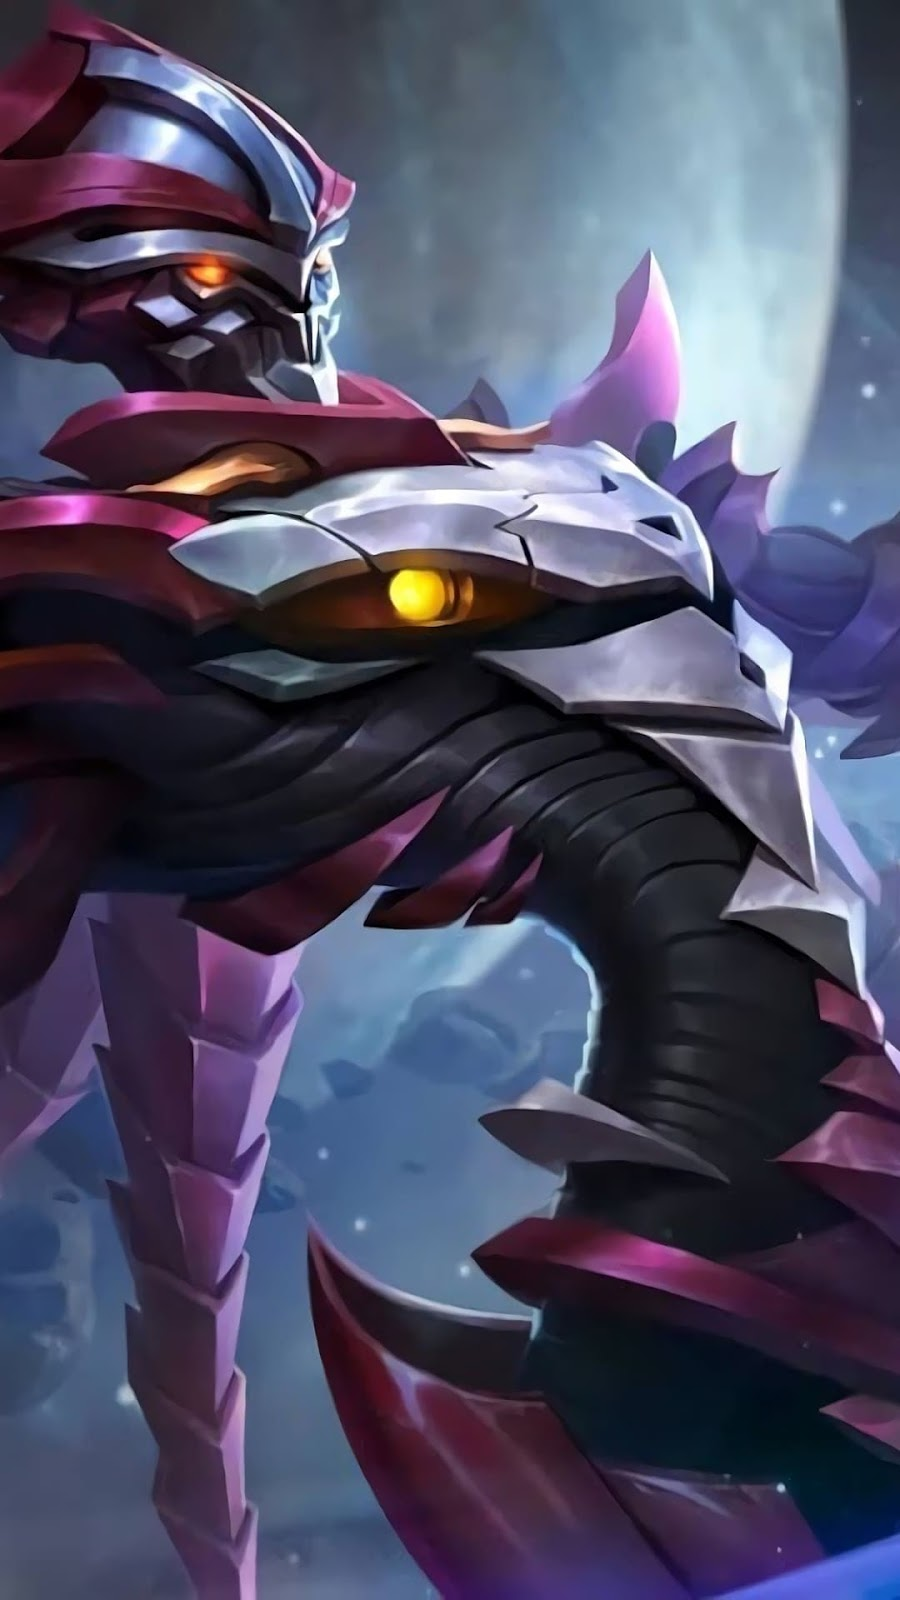 Wallpaper Zhask Crystalized Predator Skin Mobile Legends HD for Android and iOS